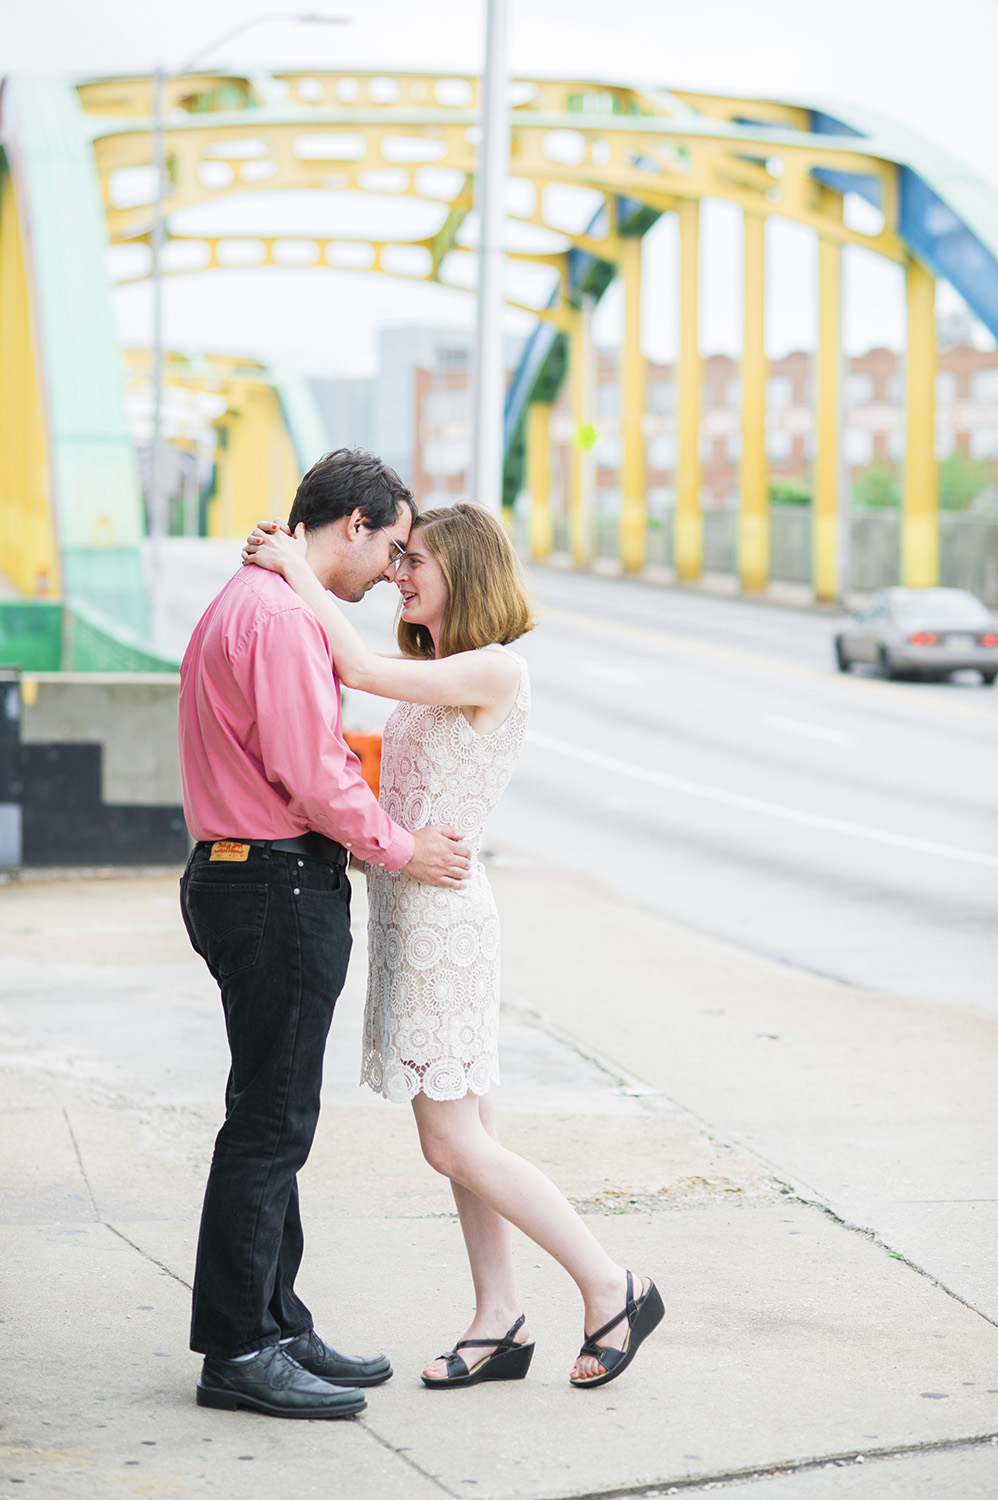 baltimore-howard-st-bridge-engagement-photography-01.jpg